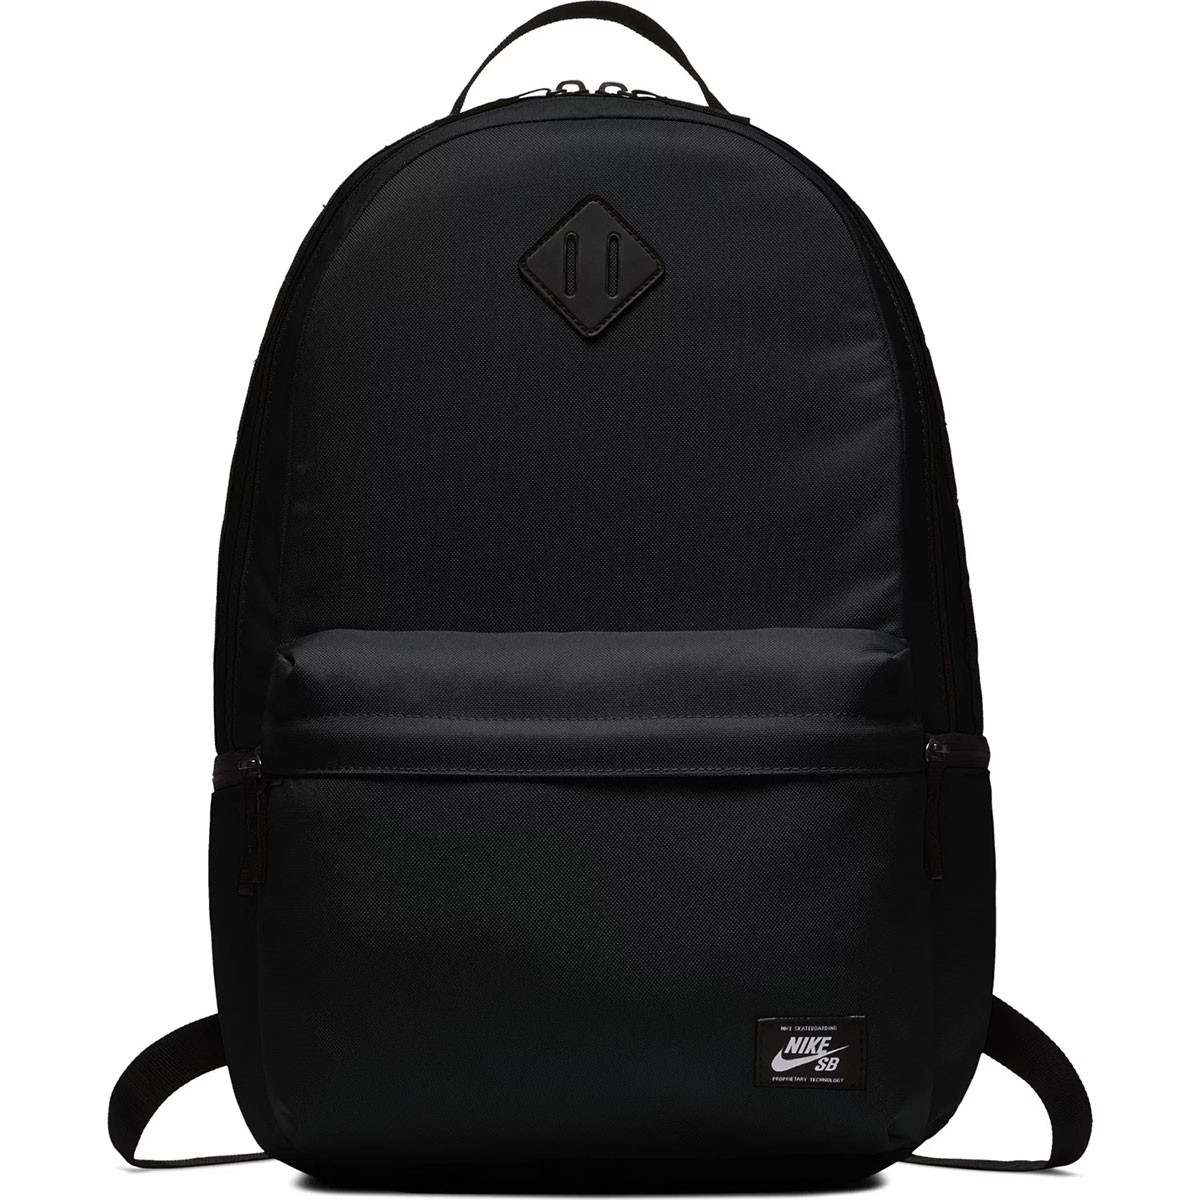 847a1f1c52 Nike SB Icon Backpack - Black Black White